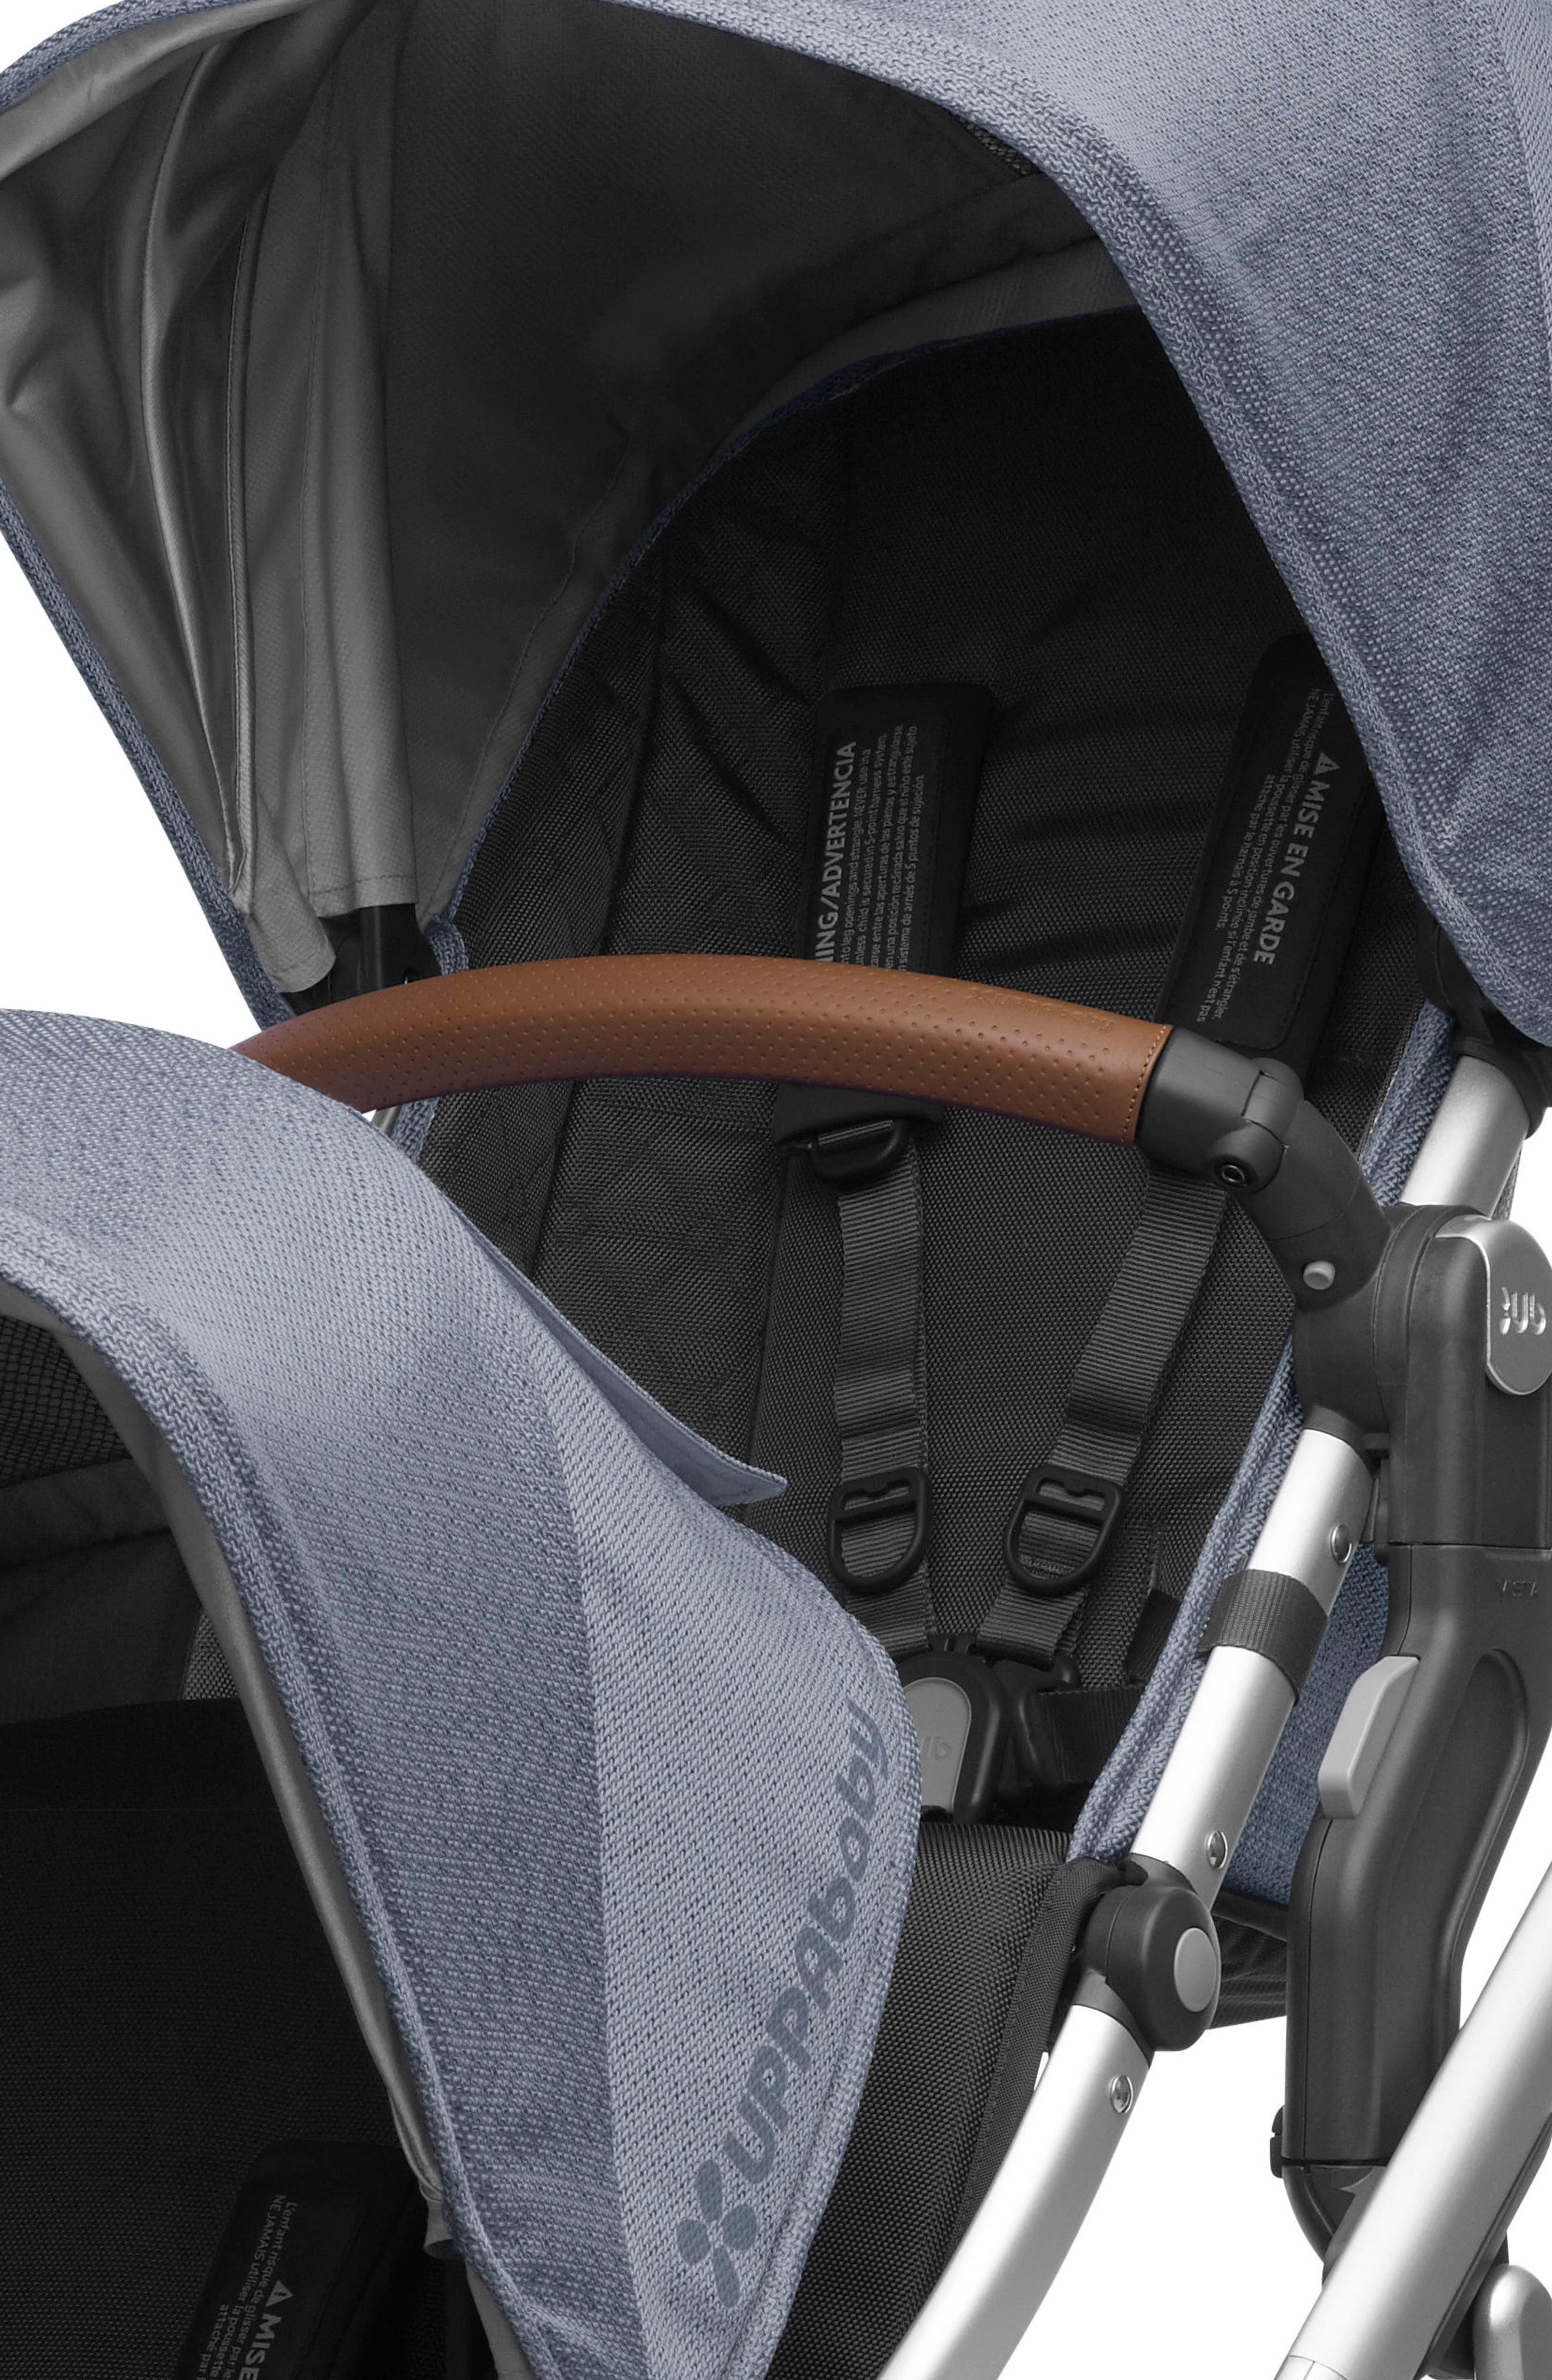 Alternate Image 2  - UPPAbaby VISTA RumbleSeat with Leather Trim